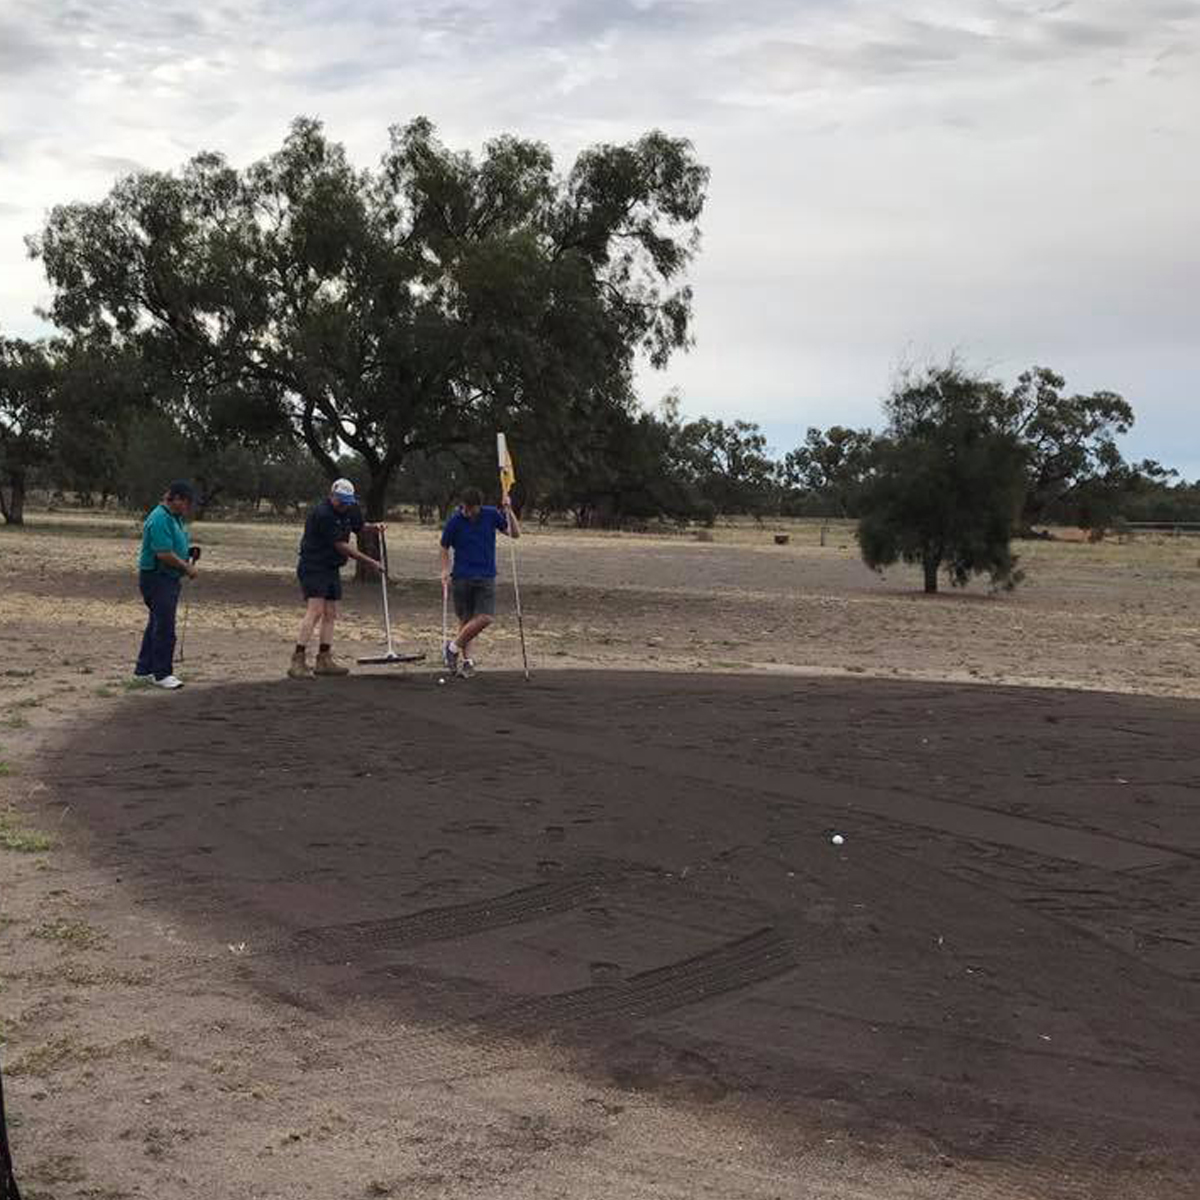 Images of the golf course at Hillston Golf Club